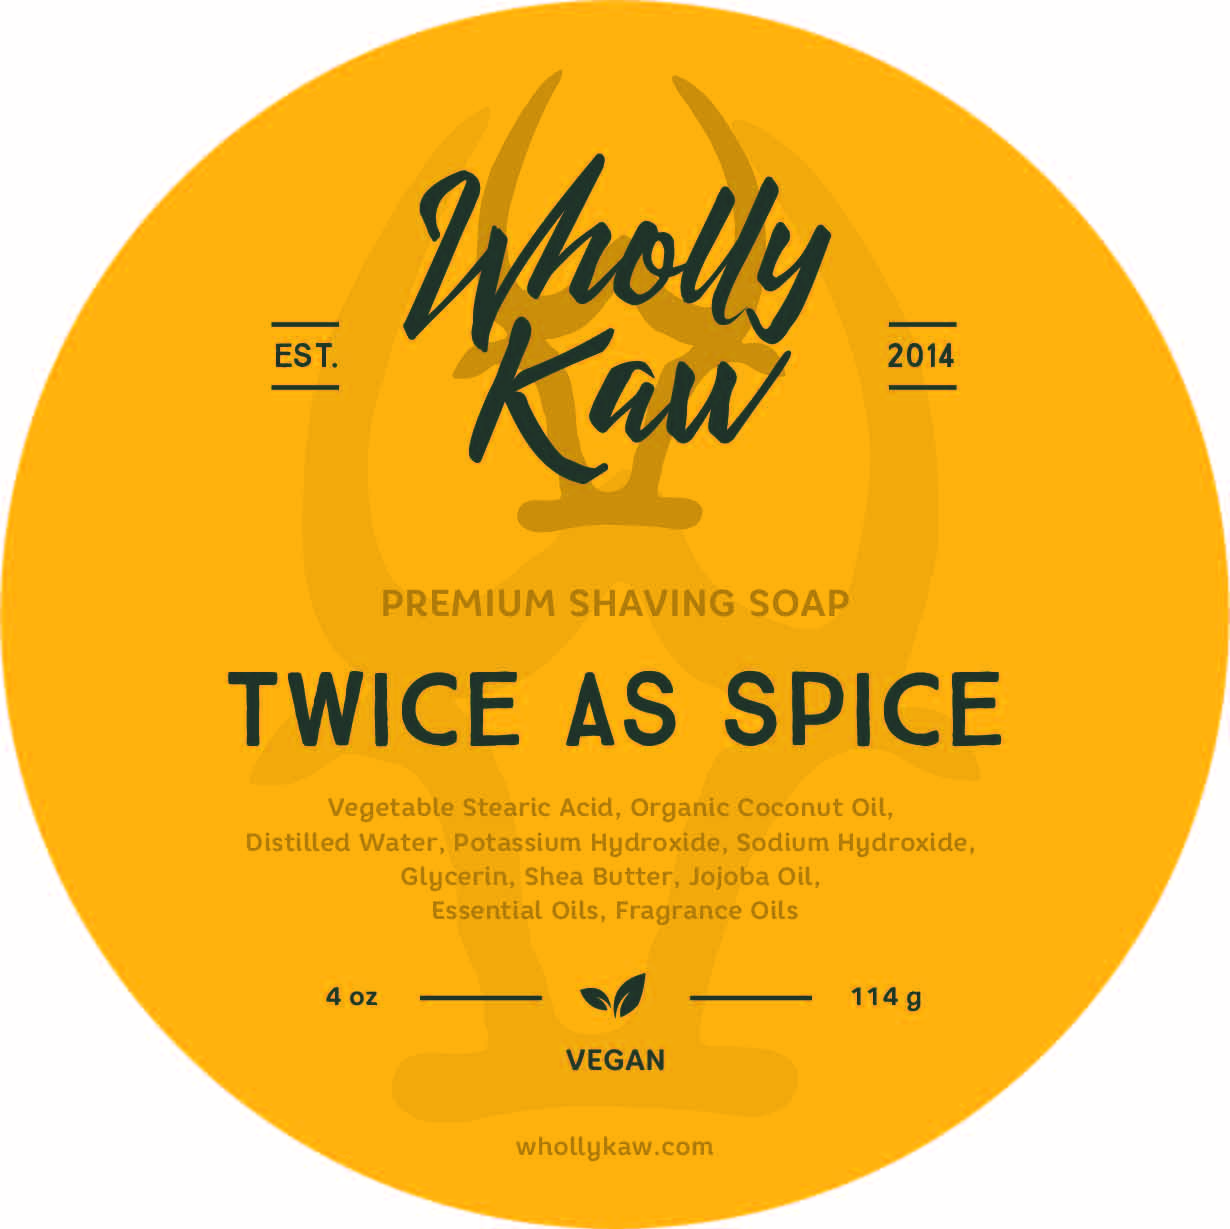 Wholly Kaw - Twice as Spice - Soap (Vegan) image